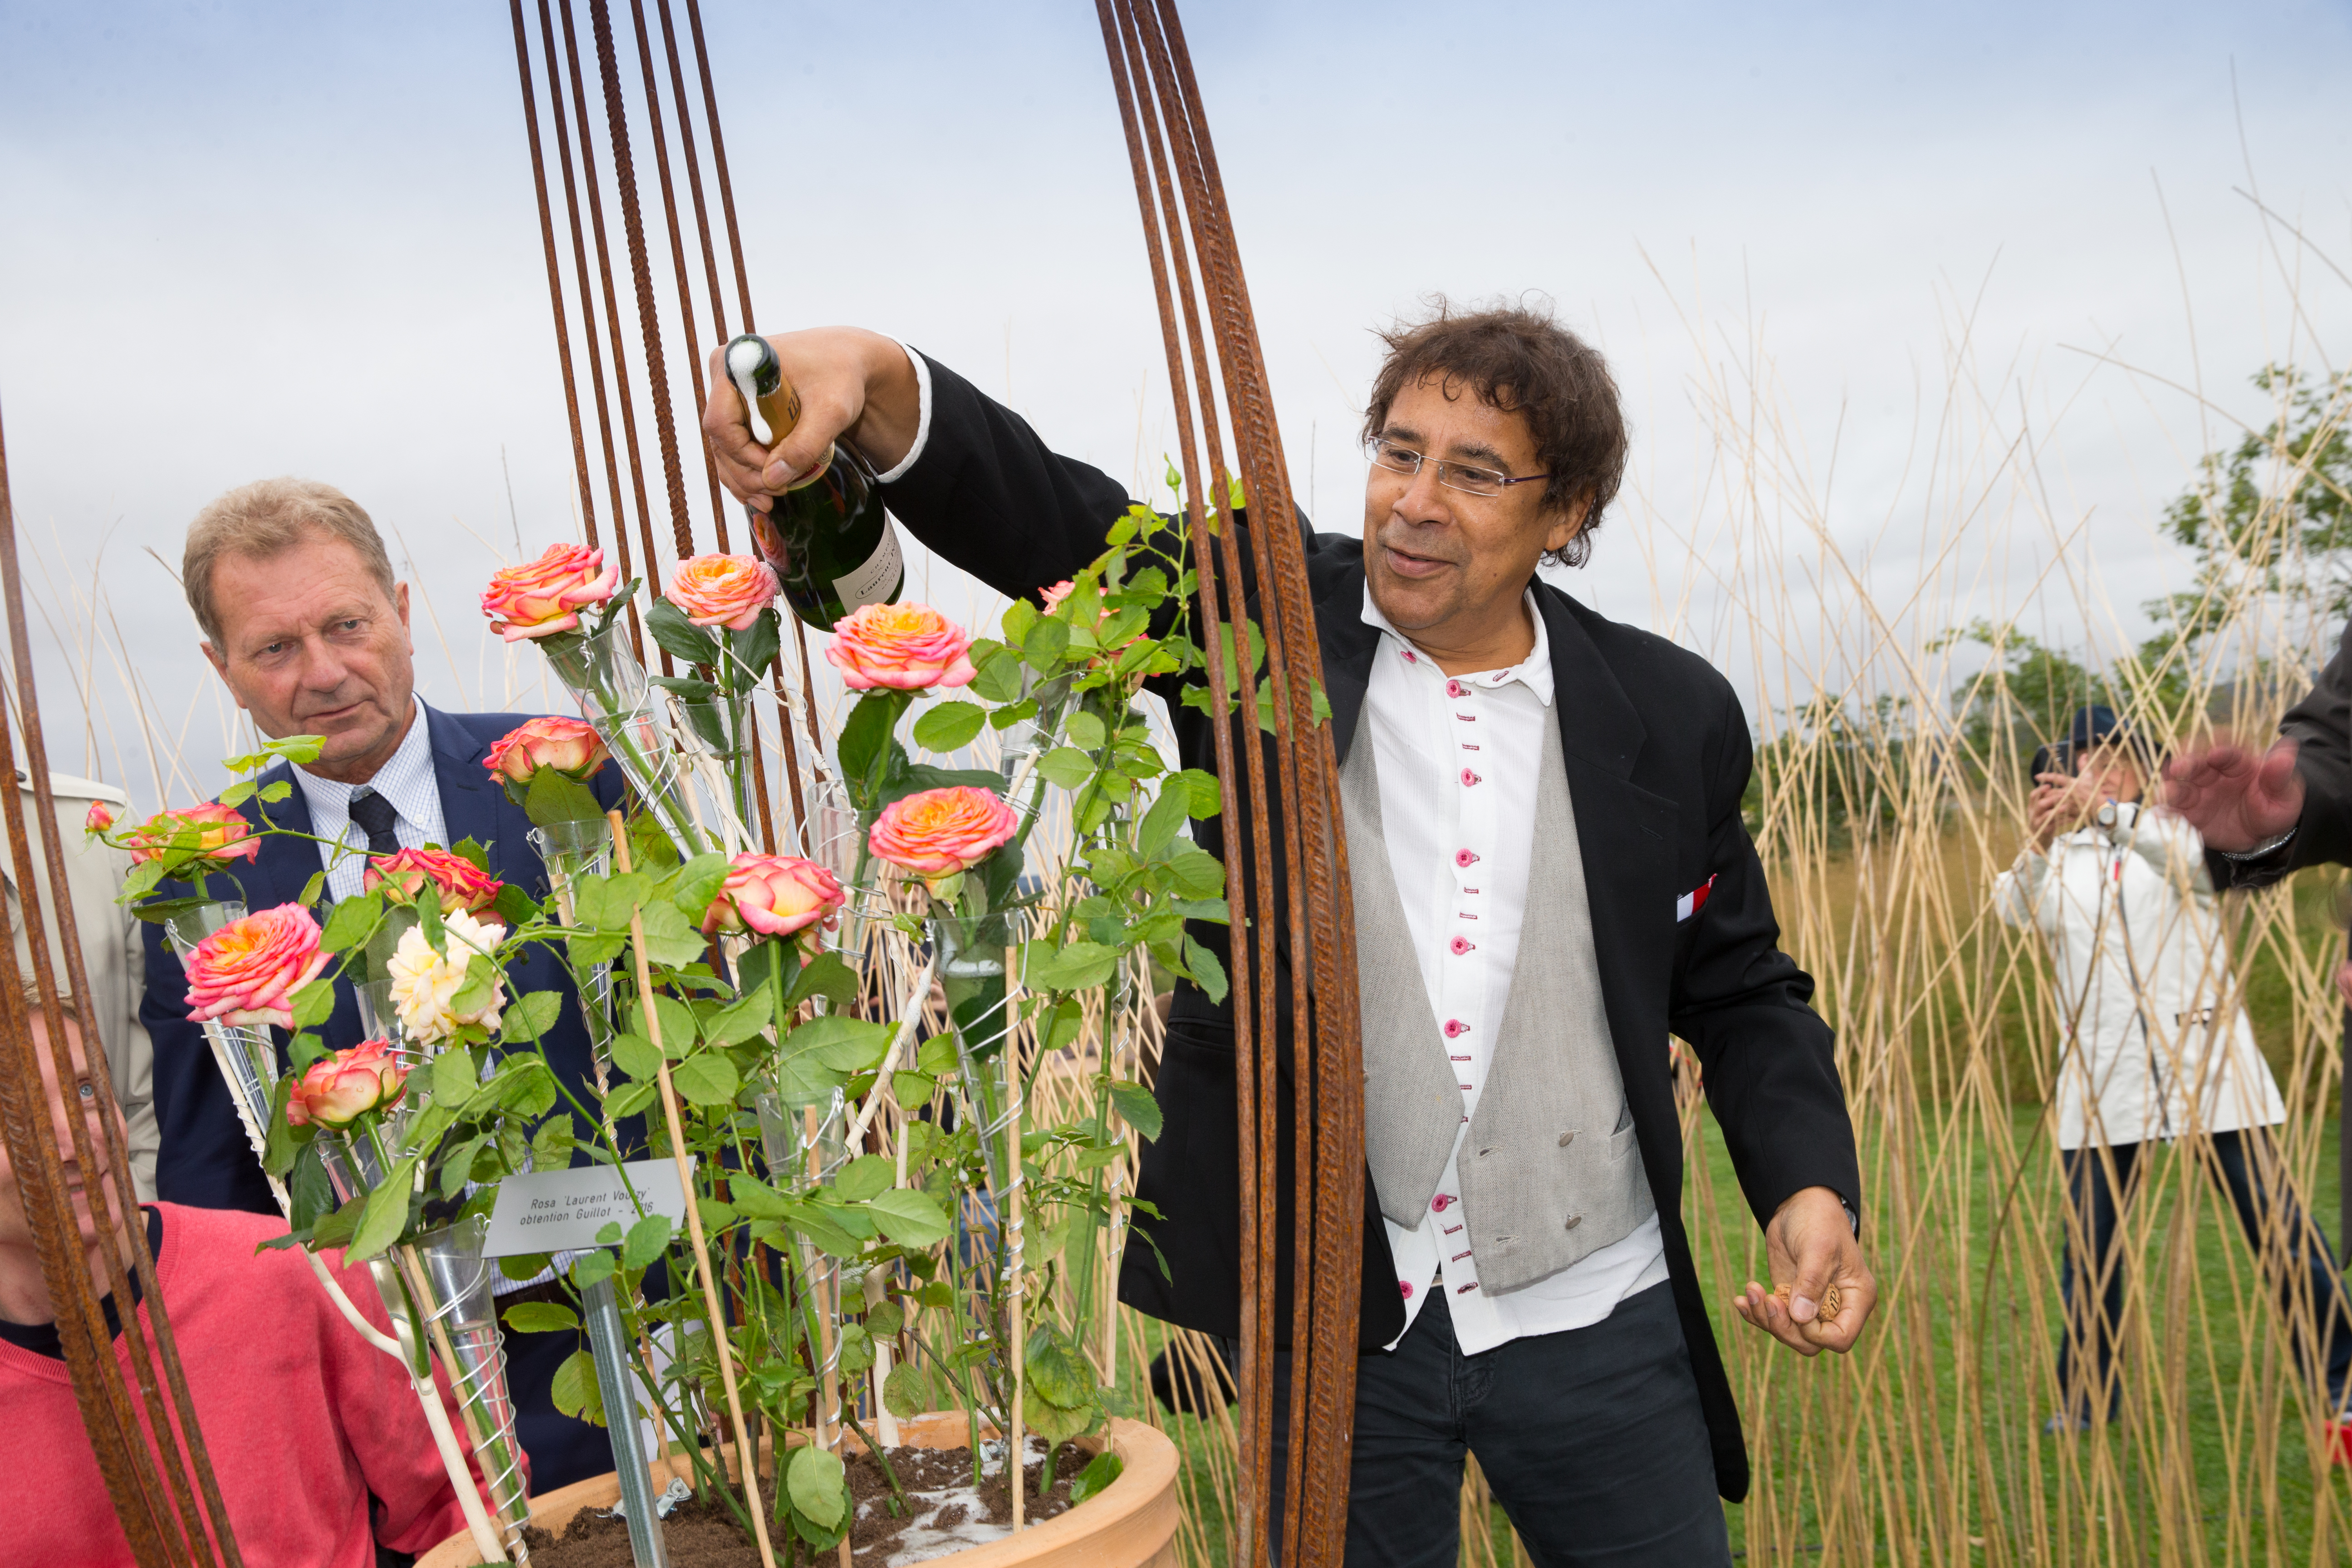 LAURENT VOULZY AUX JARDINS FRUITIERS DE LAQUENEXY EN MOSELLE PHOTO : GUILLAUME RAMON